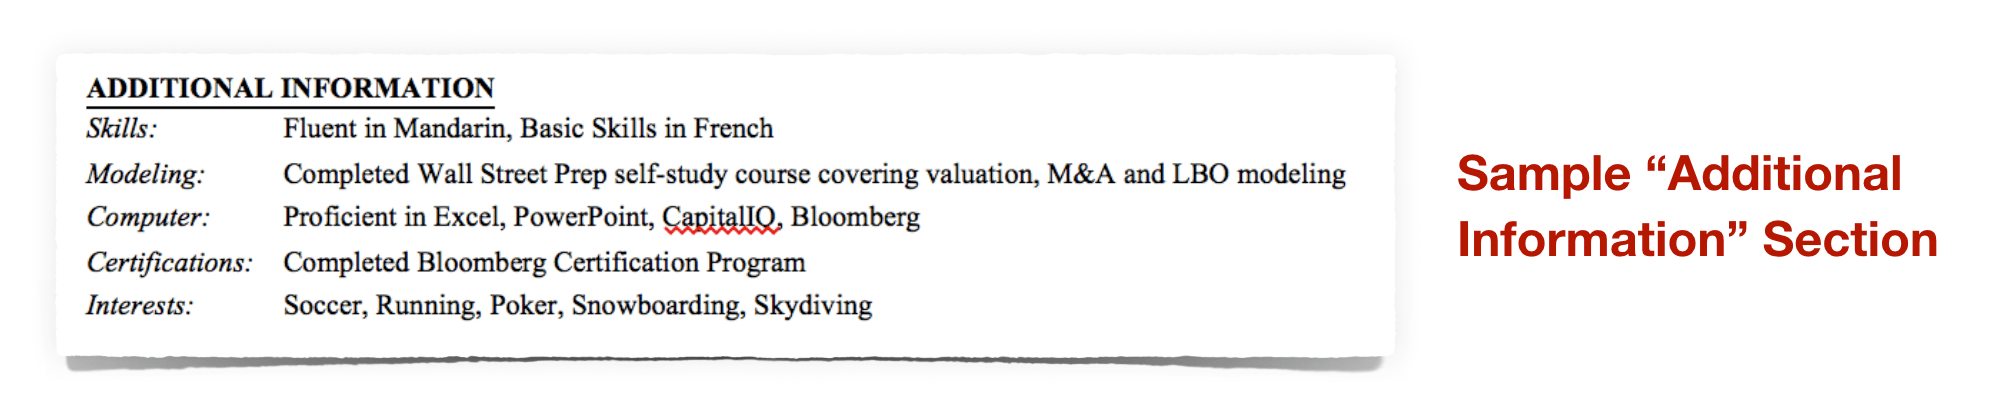 Investment Banking Additional Information Section